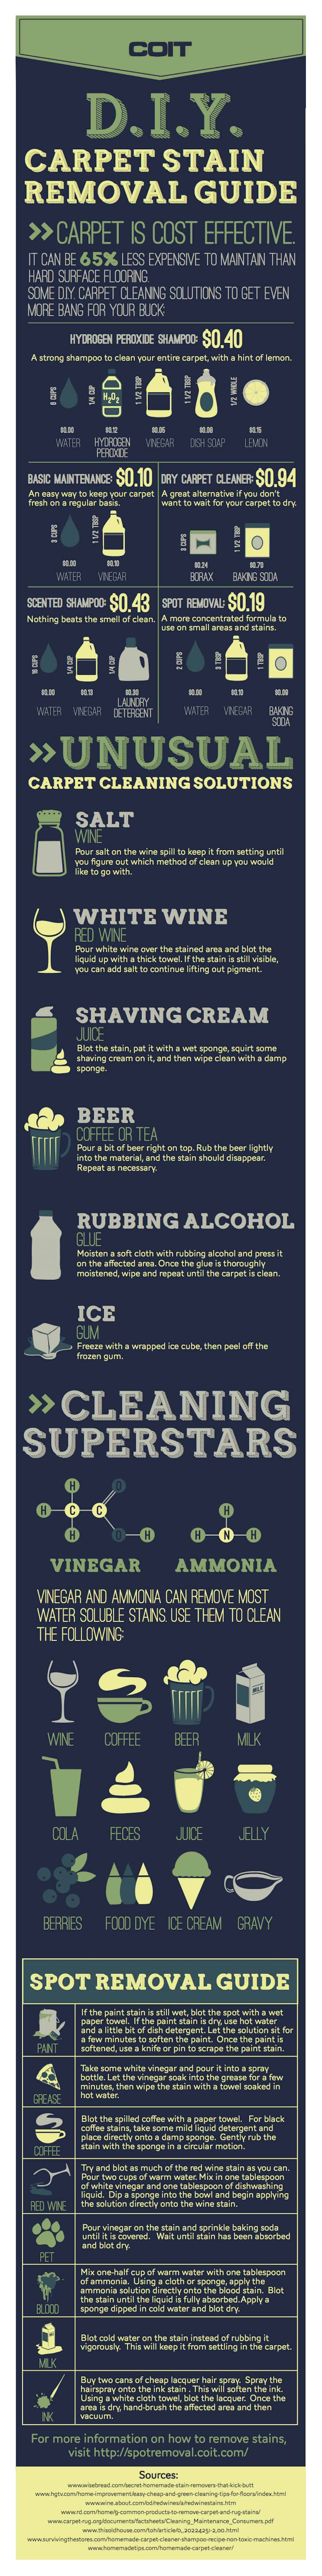 DIY_carpet_stain_removal_guide_Infographic.large